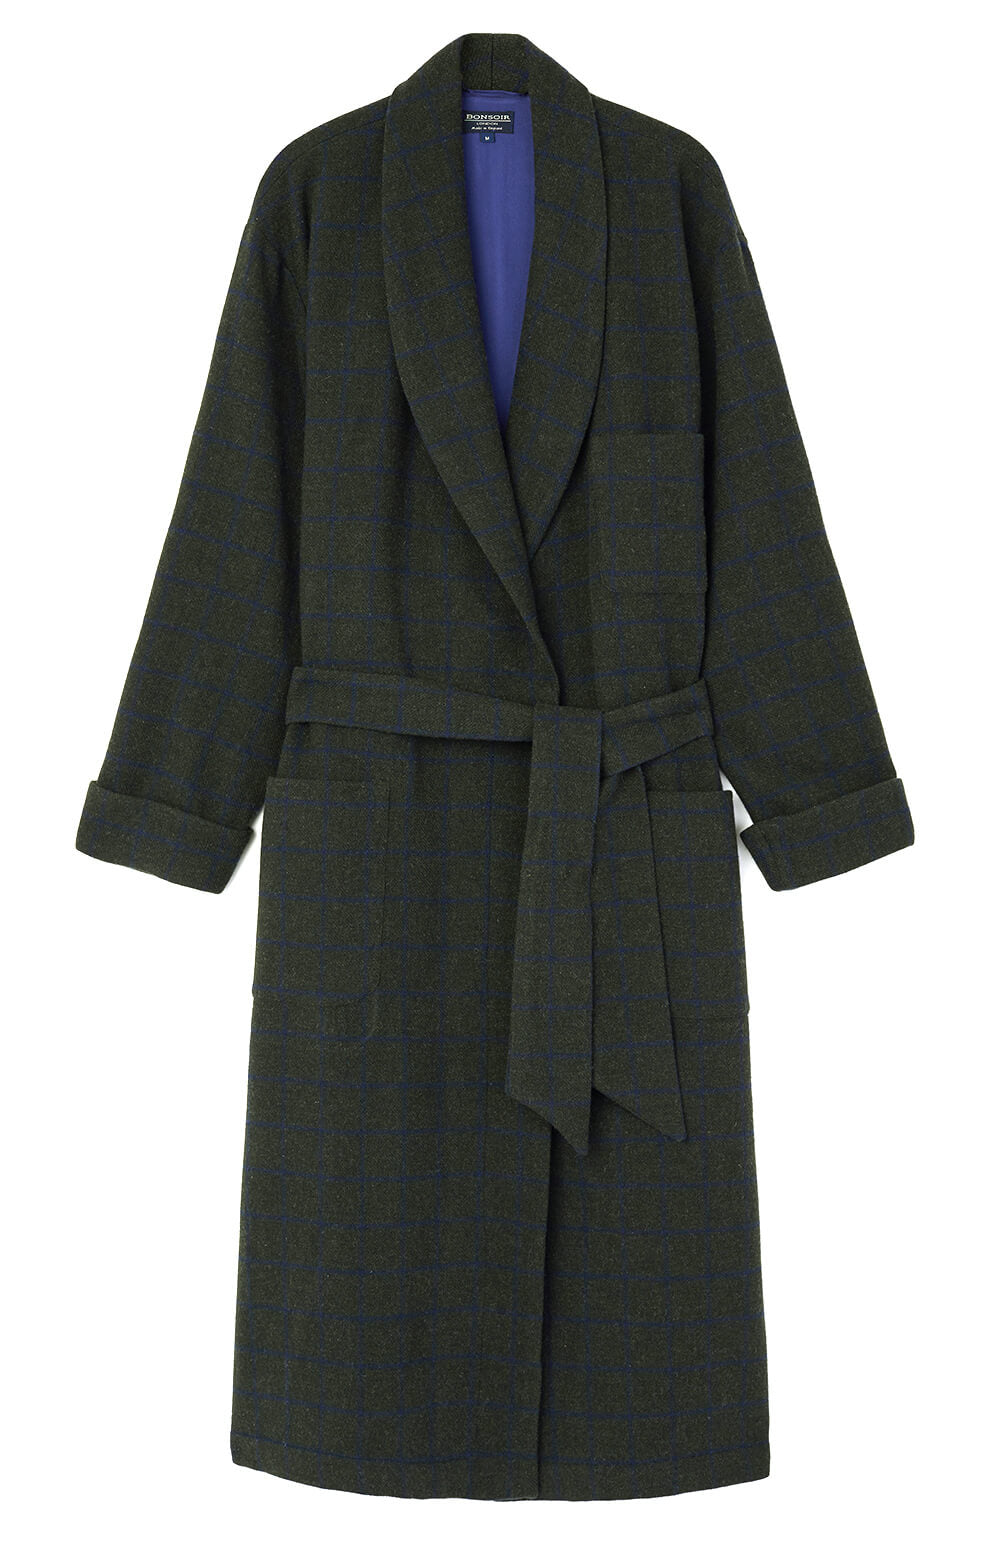 Silk-Lined Lambswool Green Check Dressing Gown | Bonsoir of London